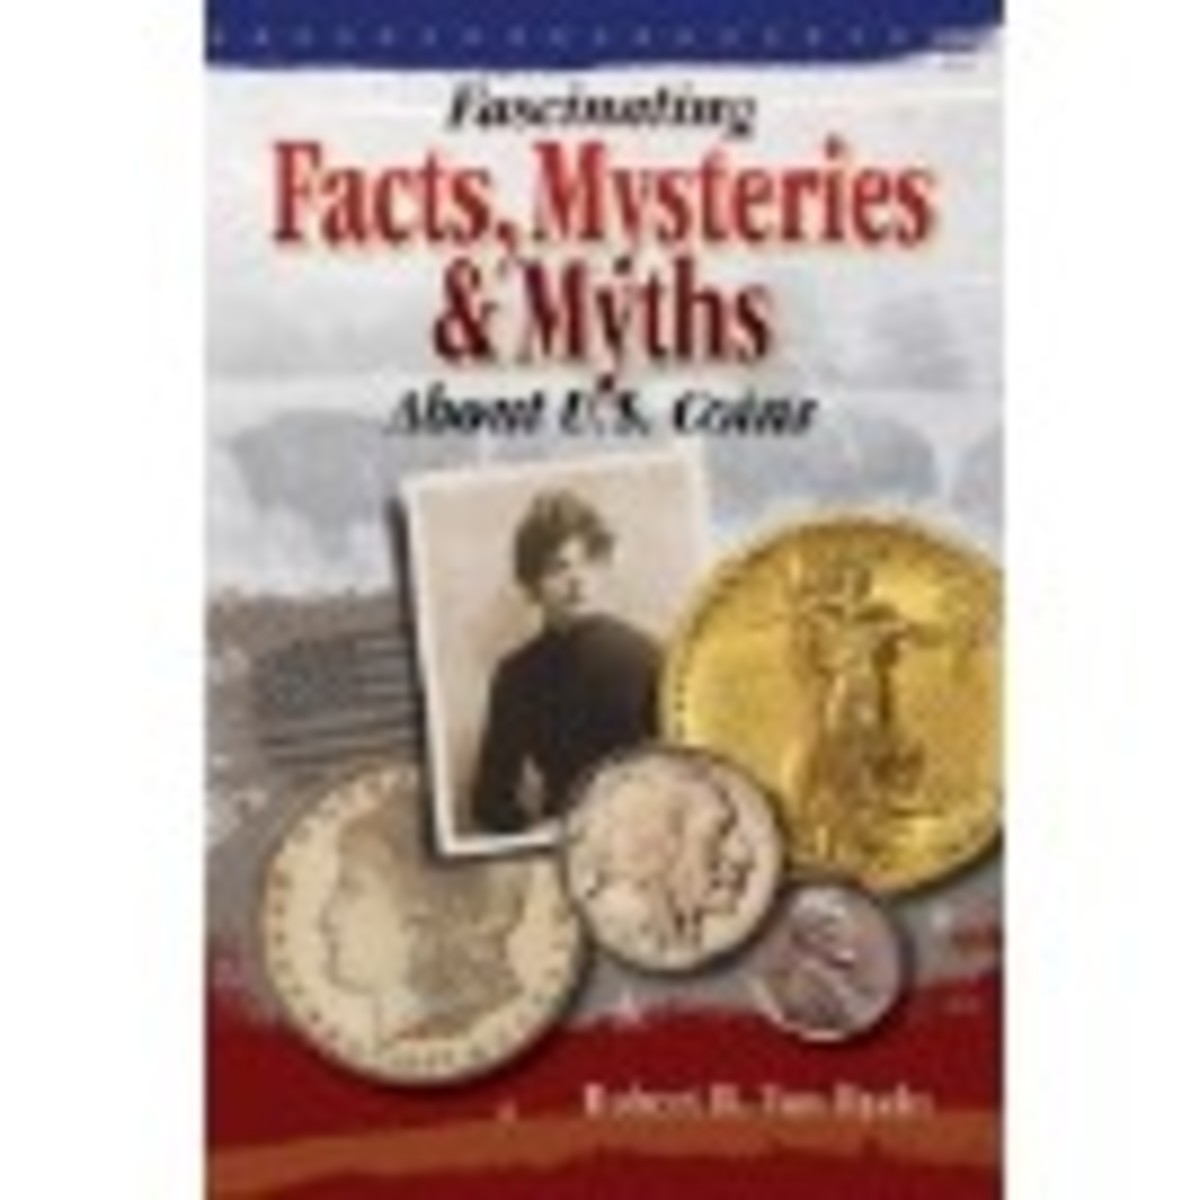 In addition to 23 chapters of intriguing stories, you'll also discover historical numismatic notes and tales related to the topics covered in each chapter.